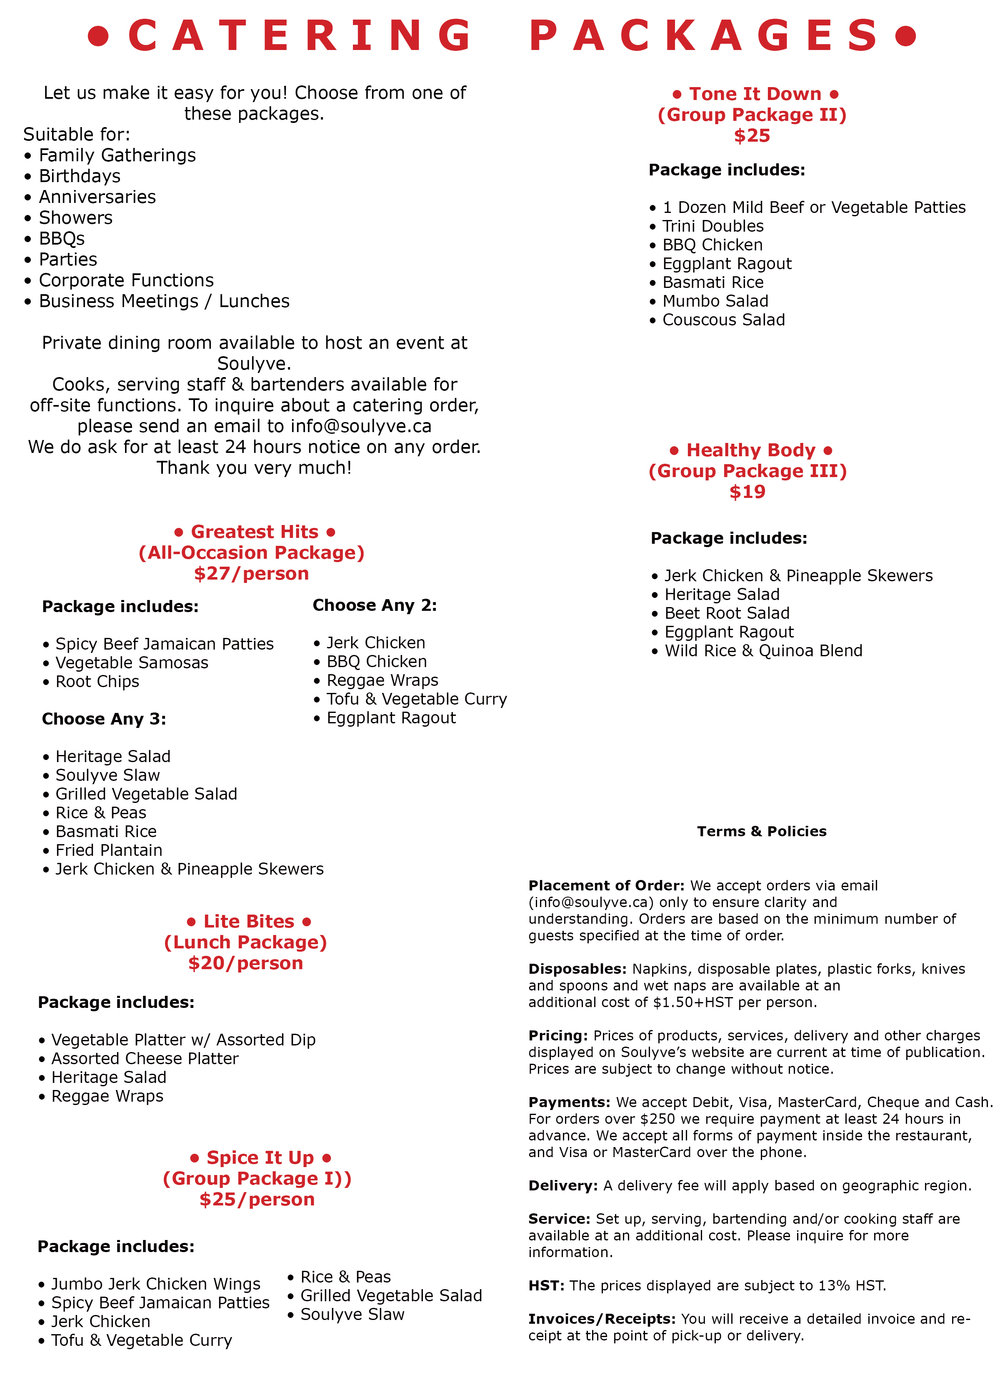 Catering Menu May 2018 packages.jpg